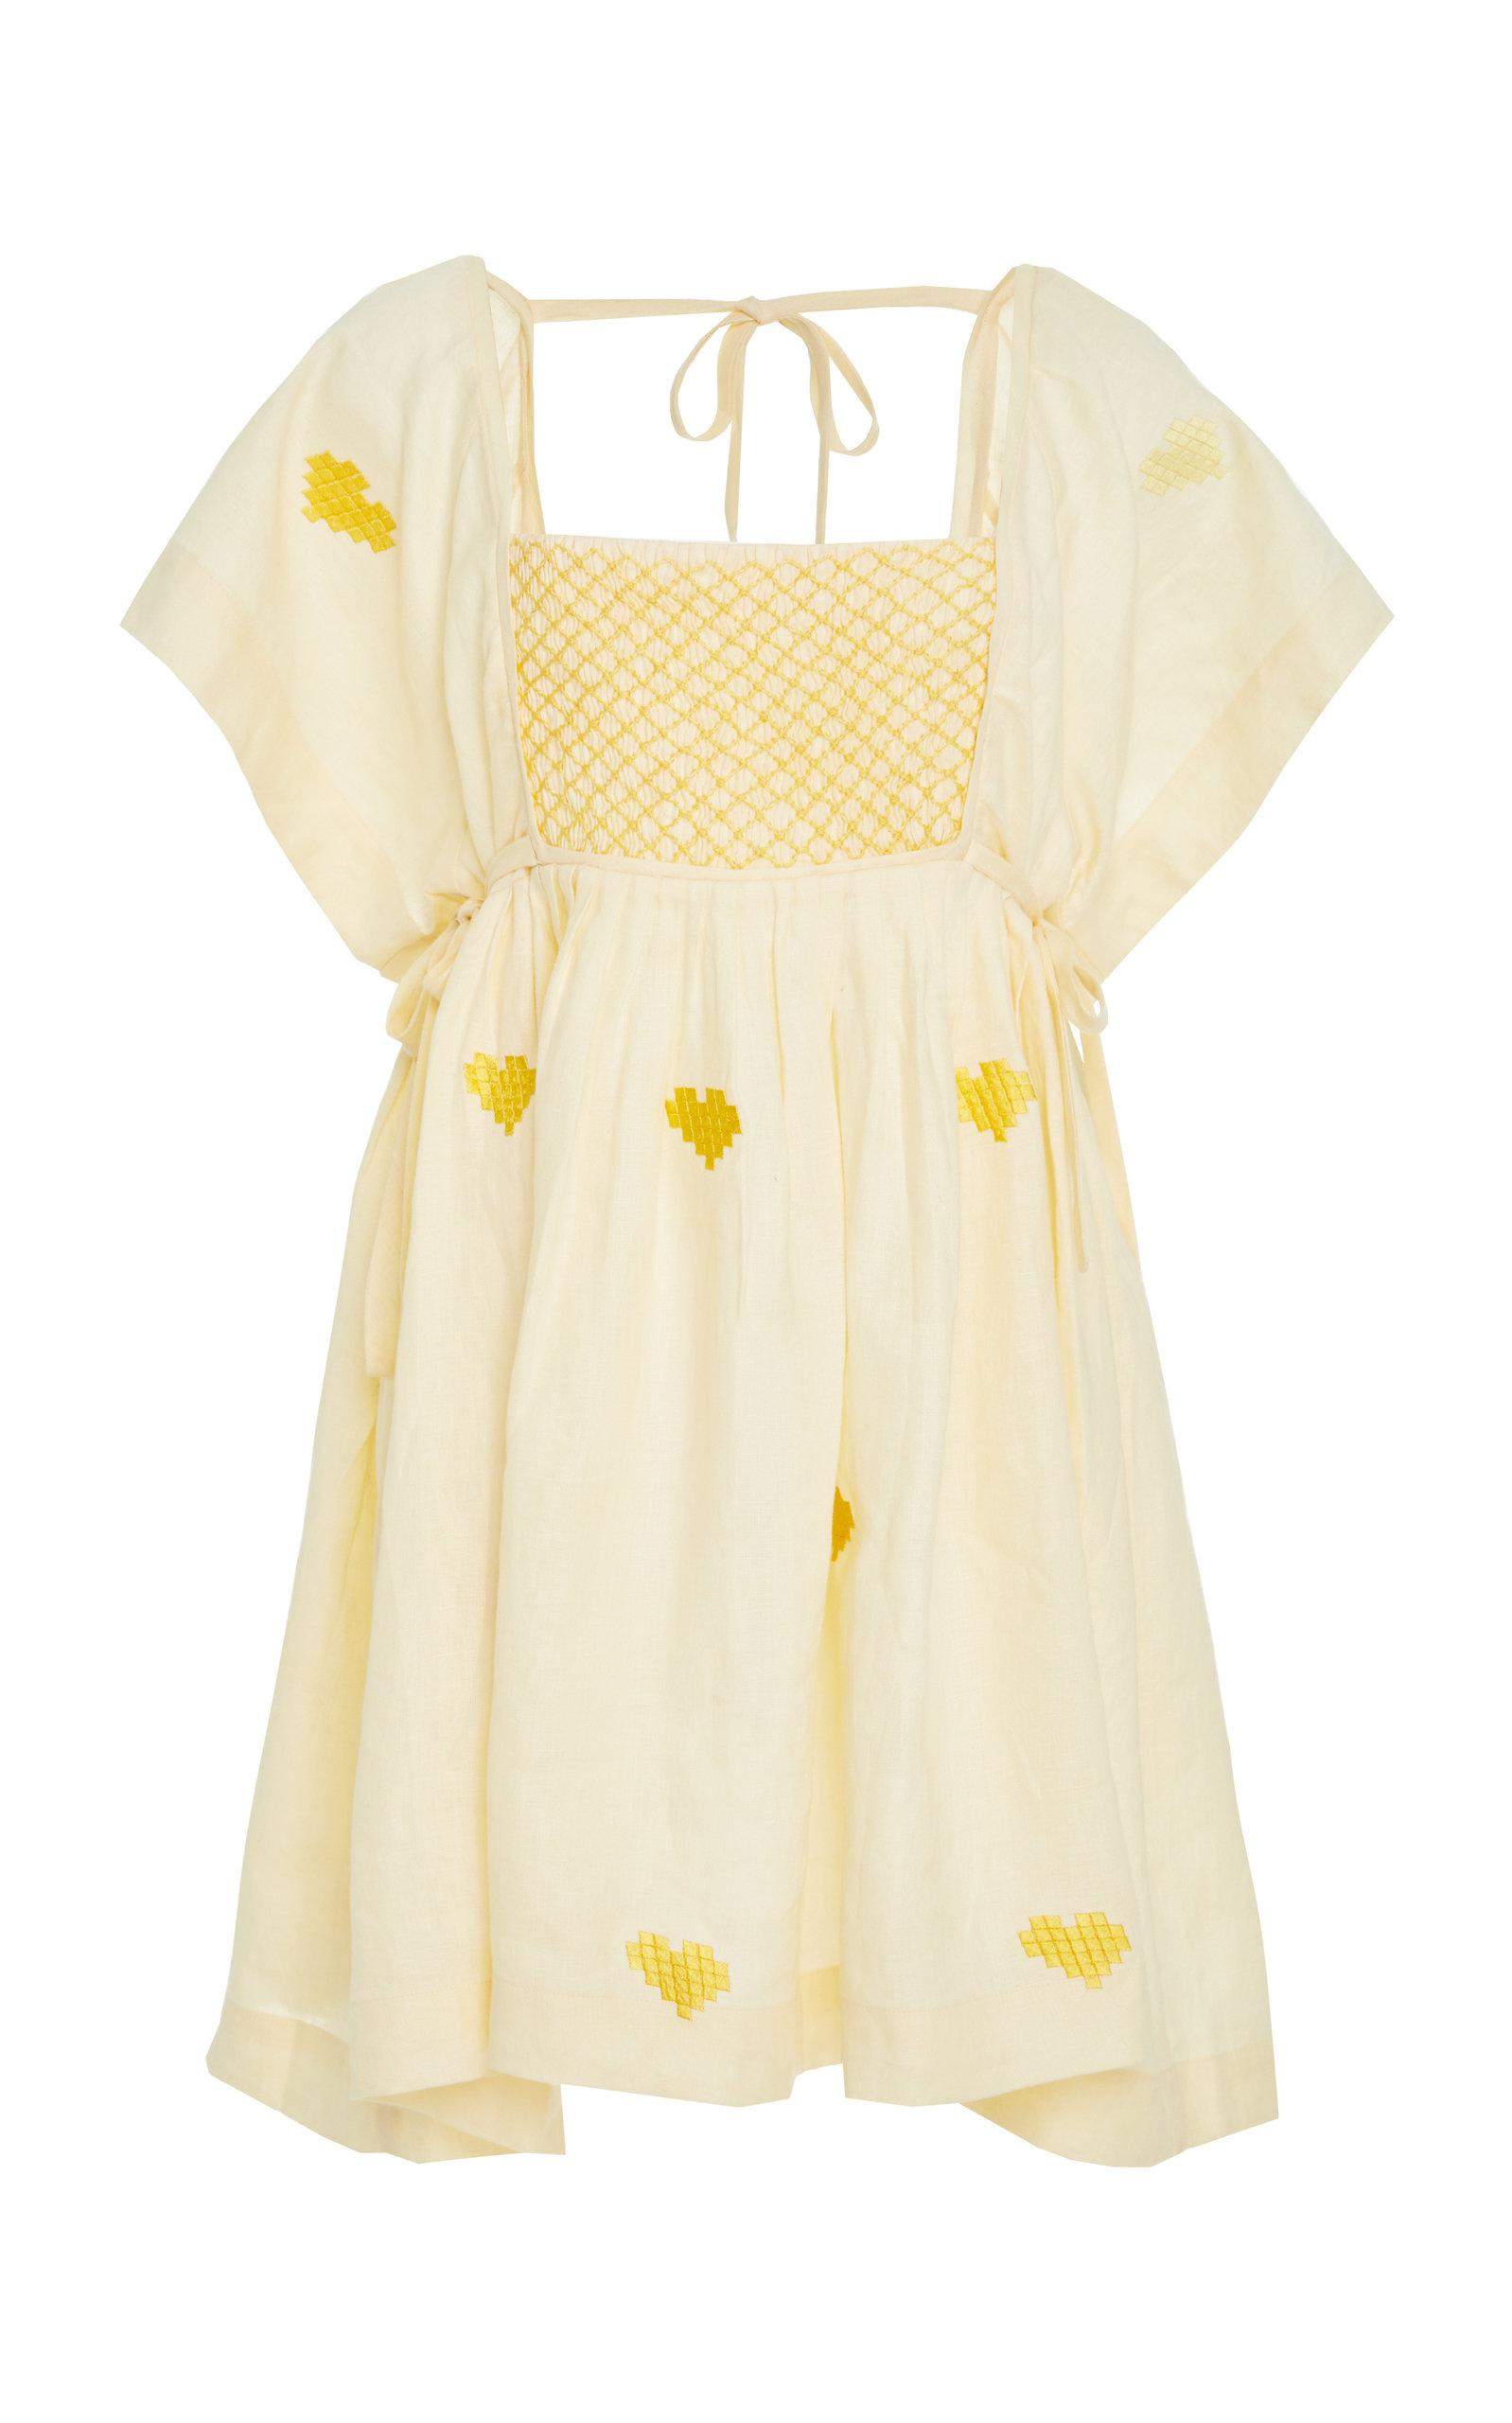 8e57a2daae8 Lyst - Innika Choo Farmer Smock Linen Dress in Yellow